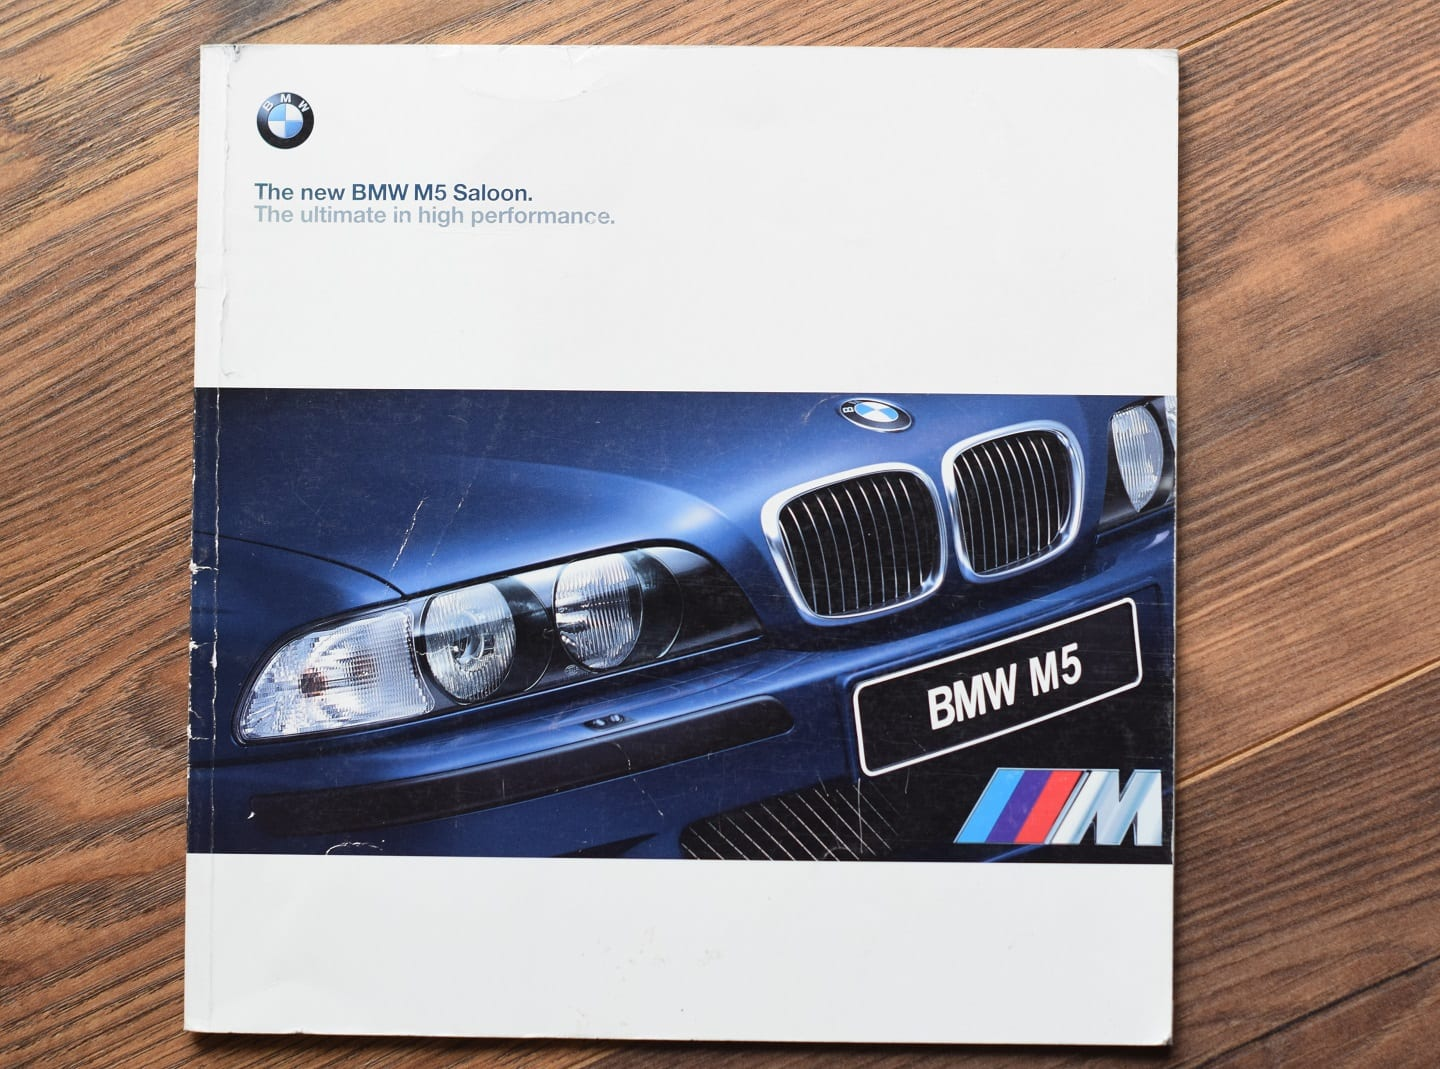 E39 BMW M5 in The Carchive